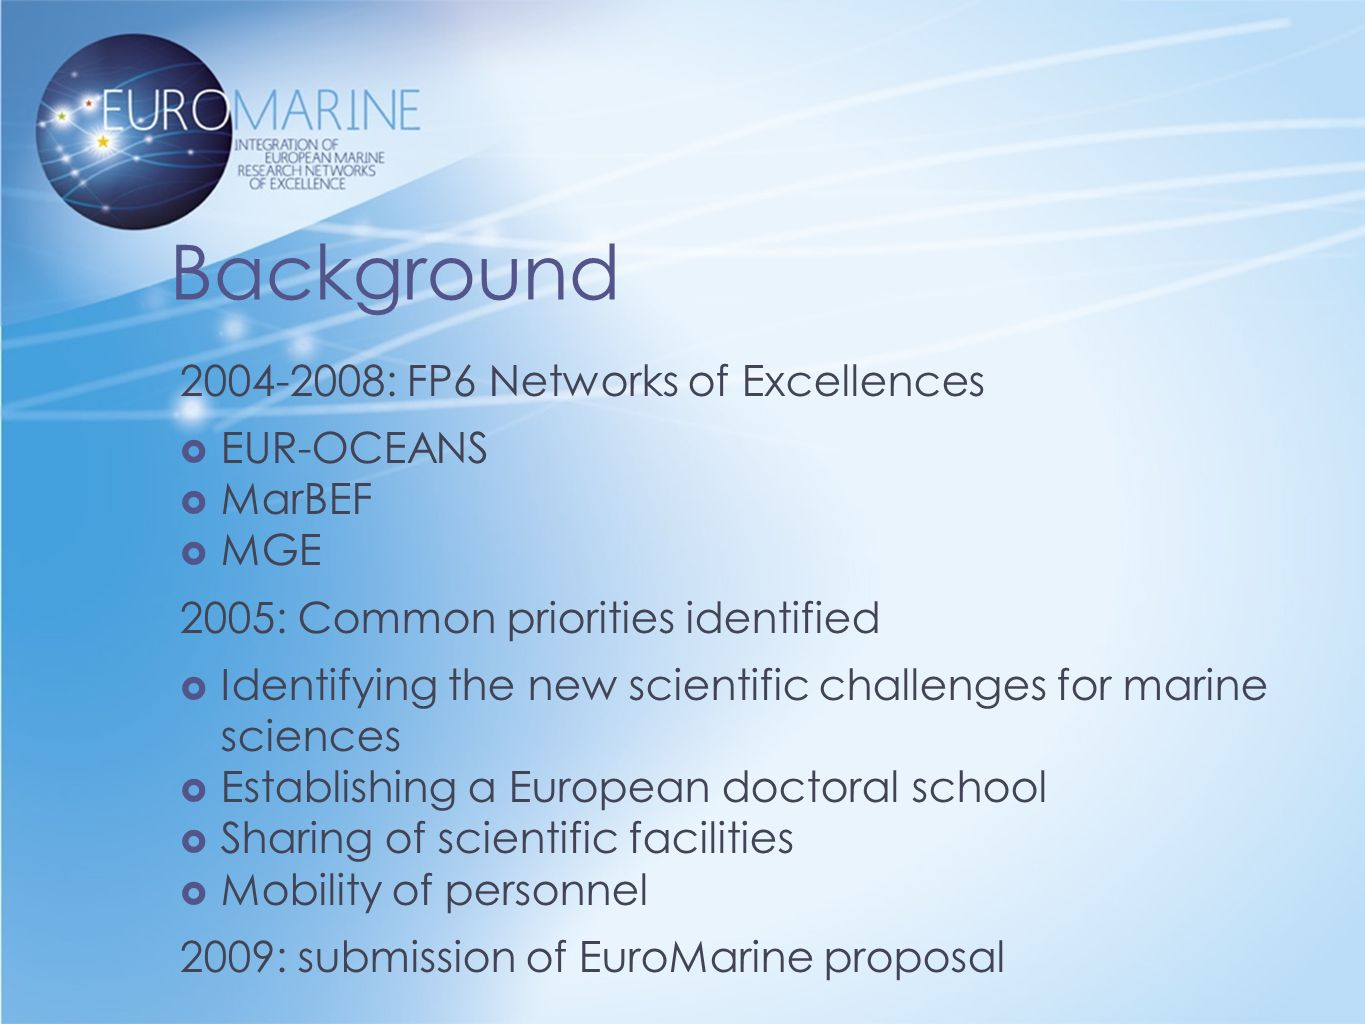 Background : FP6 Networks of Excellences  EUR-OCEANS  MarBEF  MGE 2005: Common priorities identified  Identifying the new scientific challenges for marine sciences  Establishing a European doctoral school  Sharing of scientific facilities  Mobility of personnel 2009: submission of EuroMarine proposal